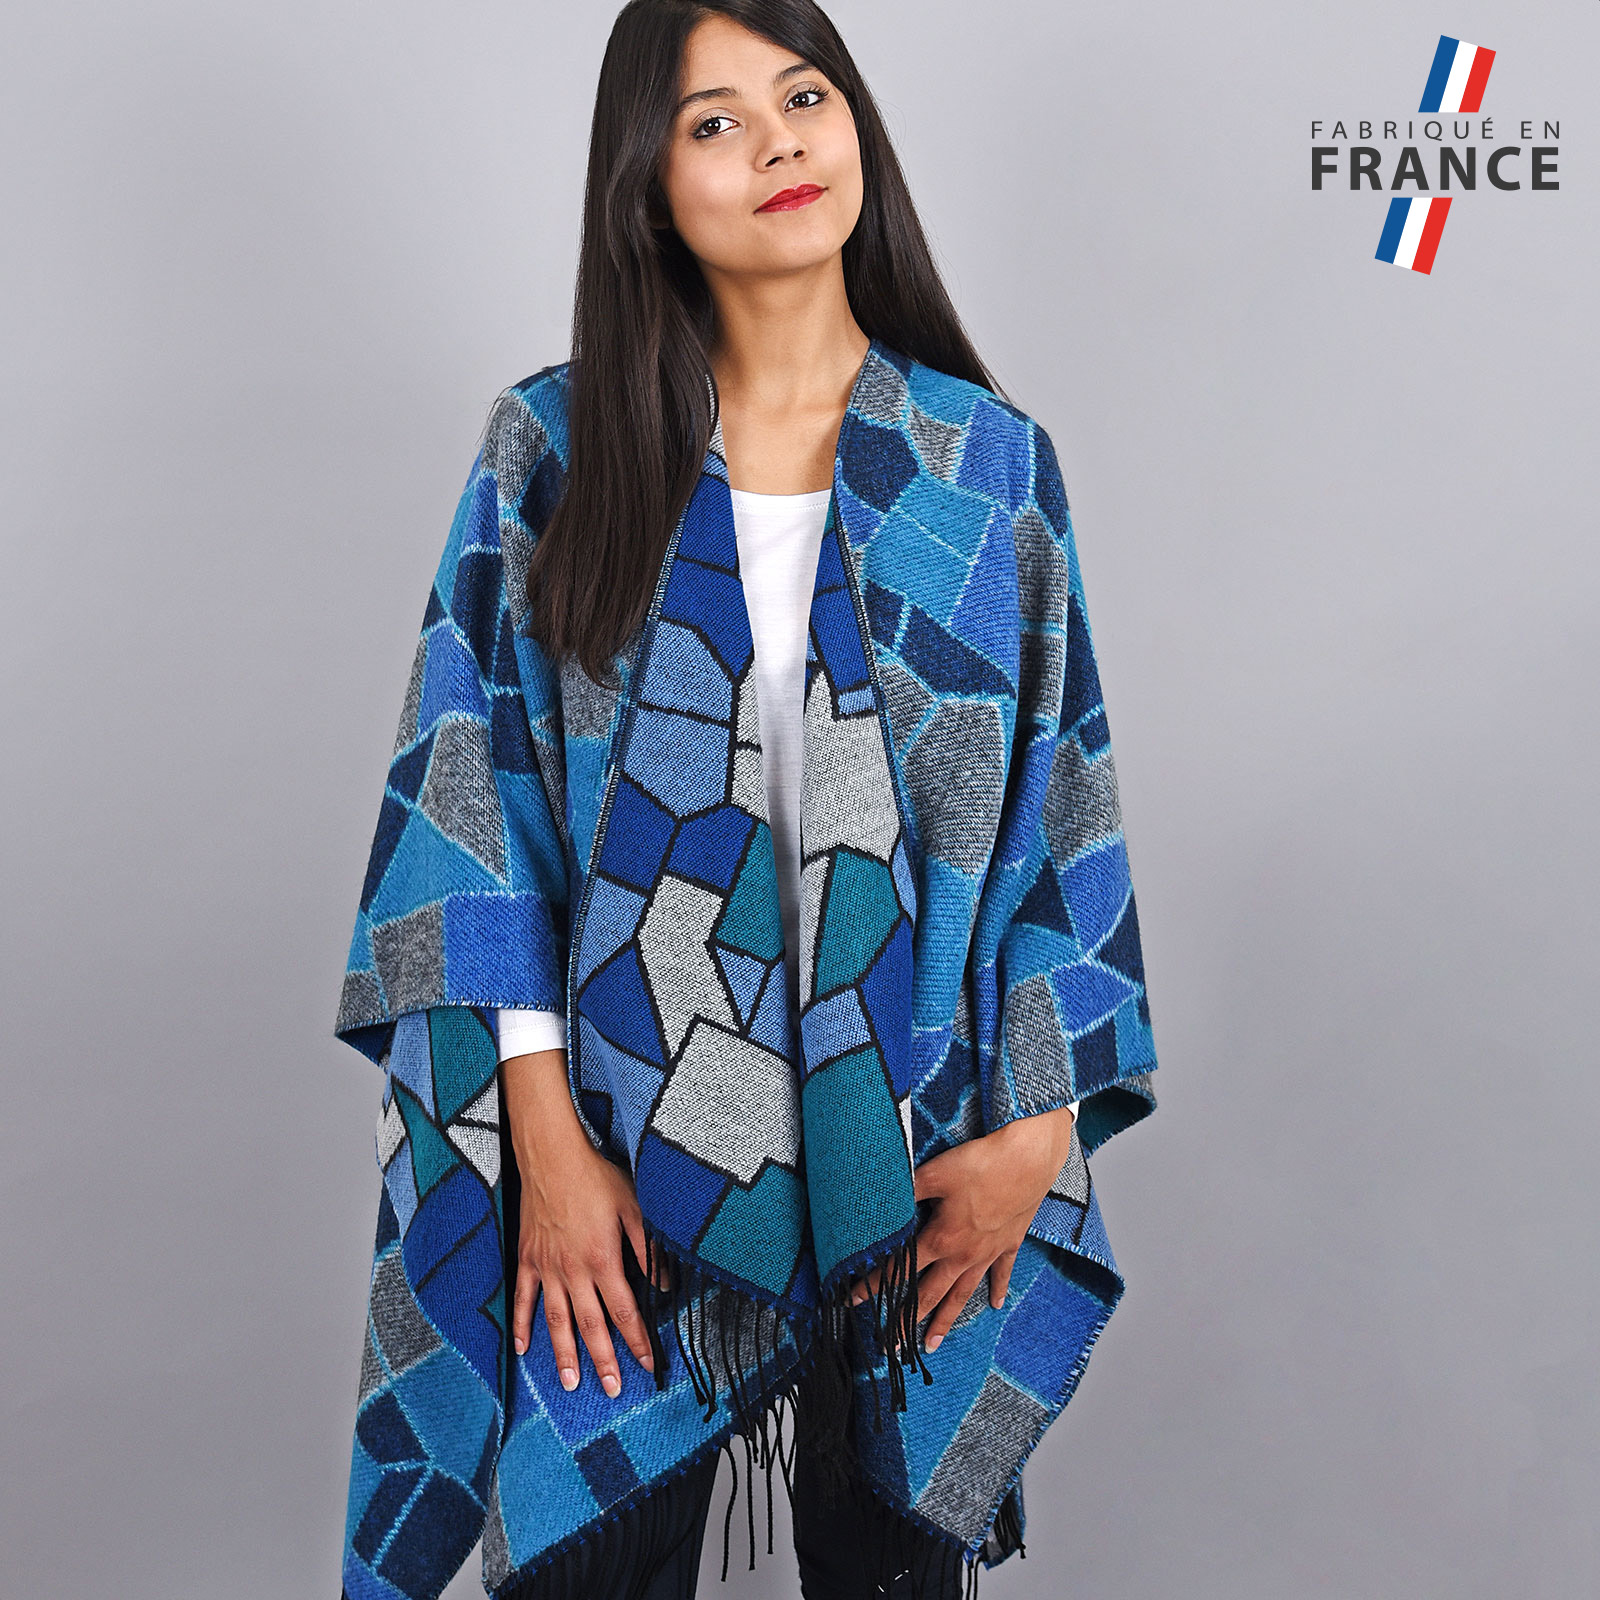 AT-03961-VF16-FR-poncho-carreaux-bleu